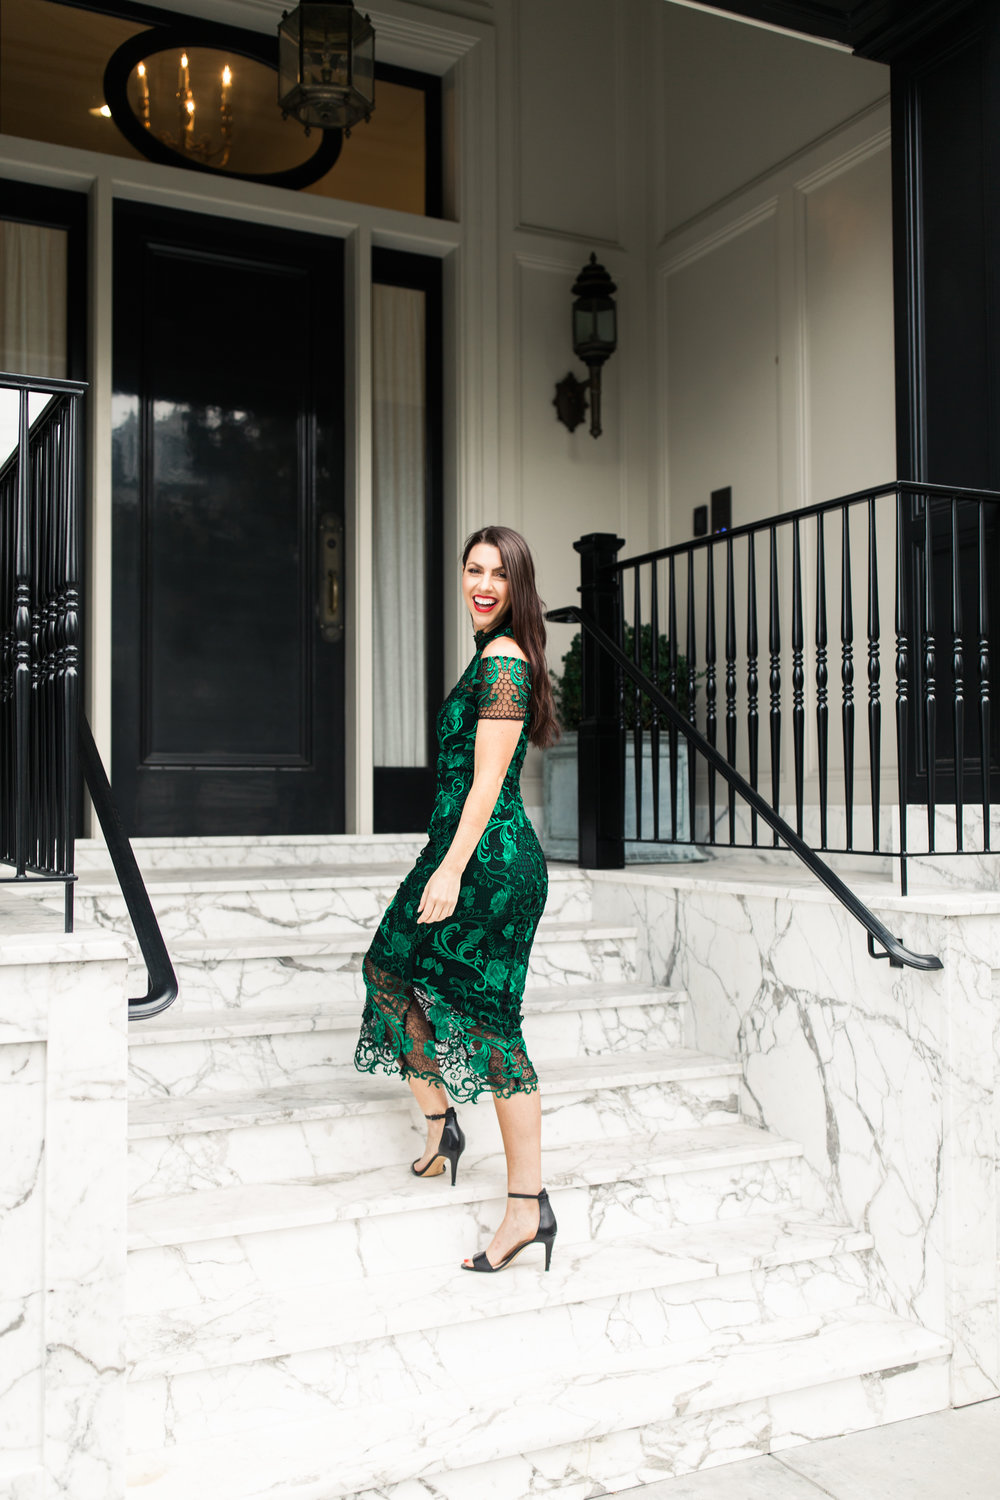 Marchesa Notte Remove from Hearts Green Lace Cocktail Dress